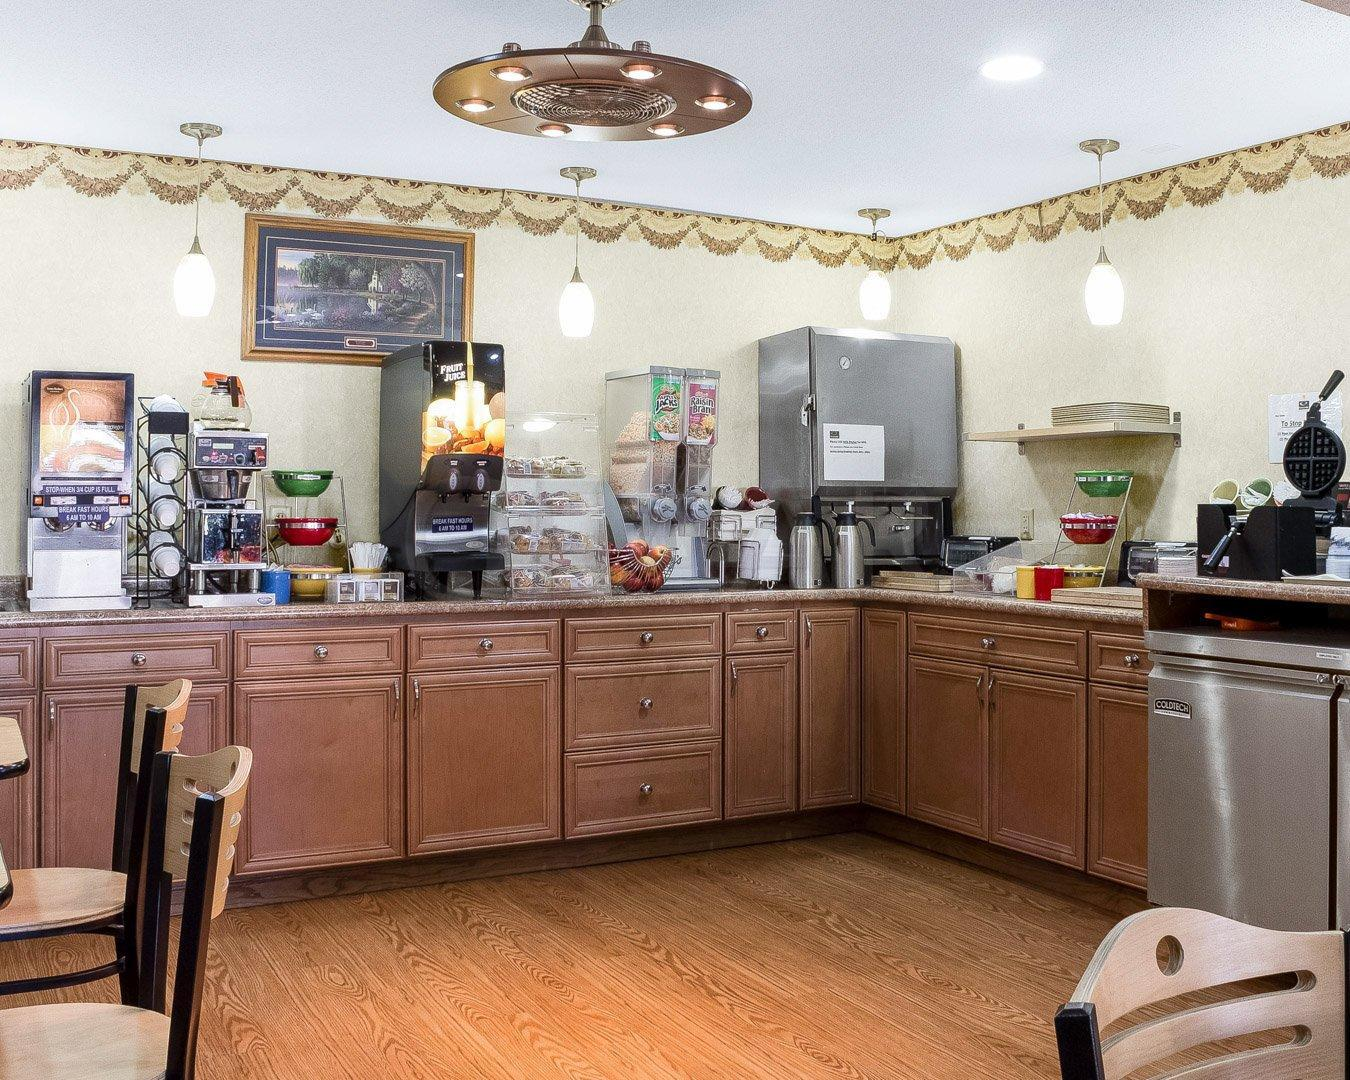 900 43RD ST North, Grand Forks, ND 58203